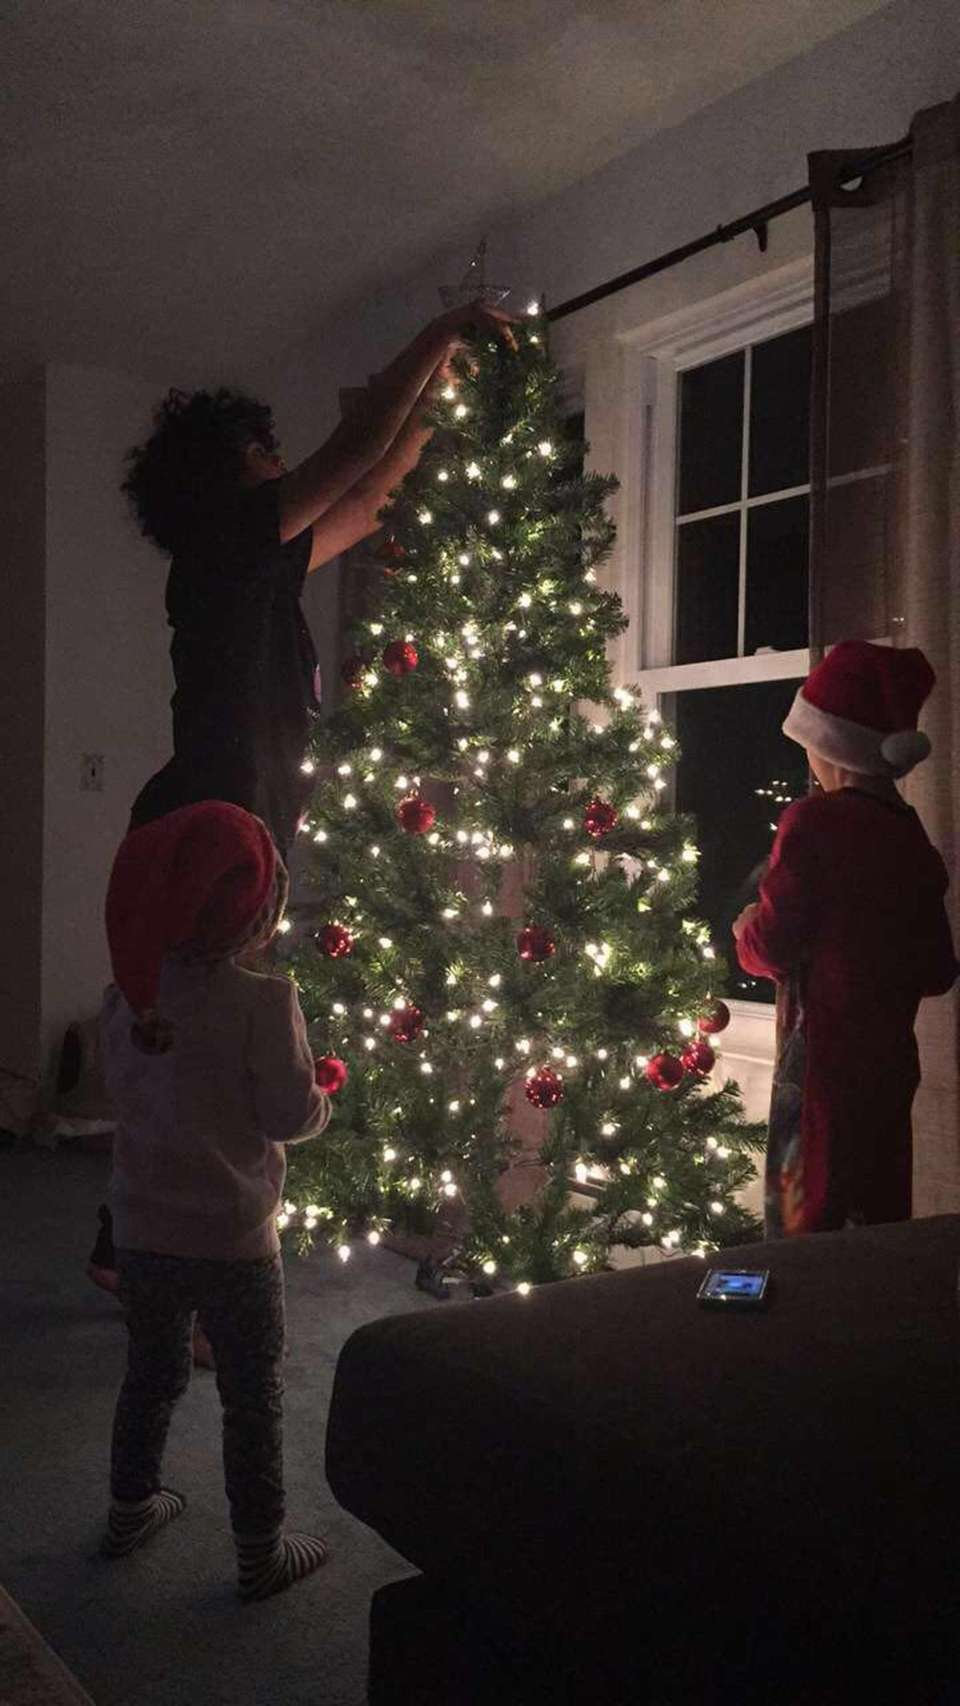 Decorating the tree, Khalil putting up the star